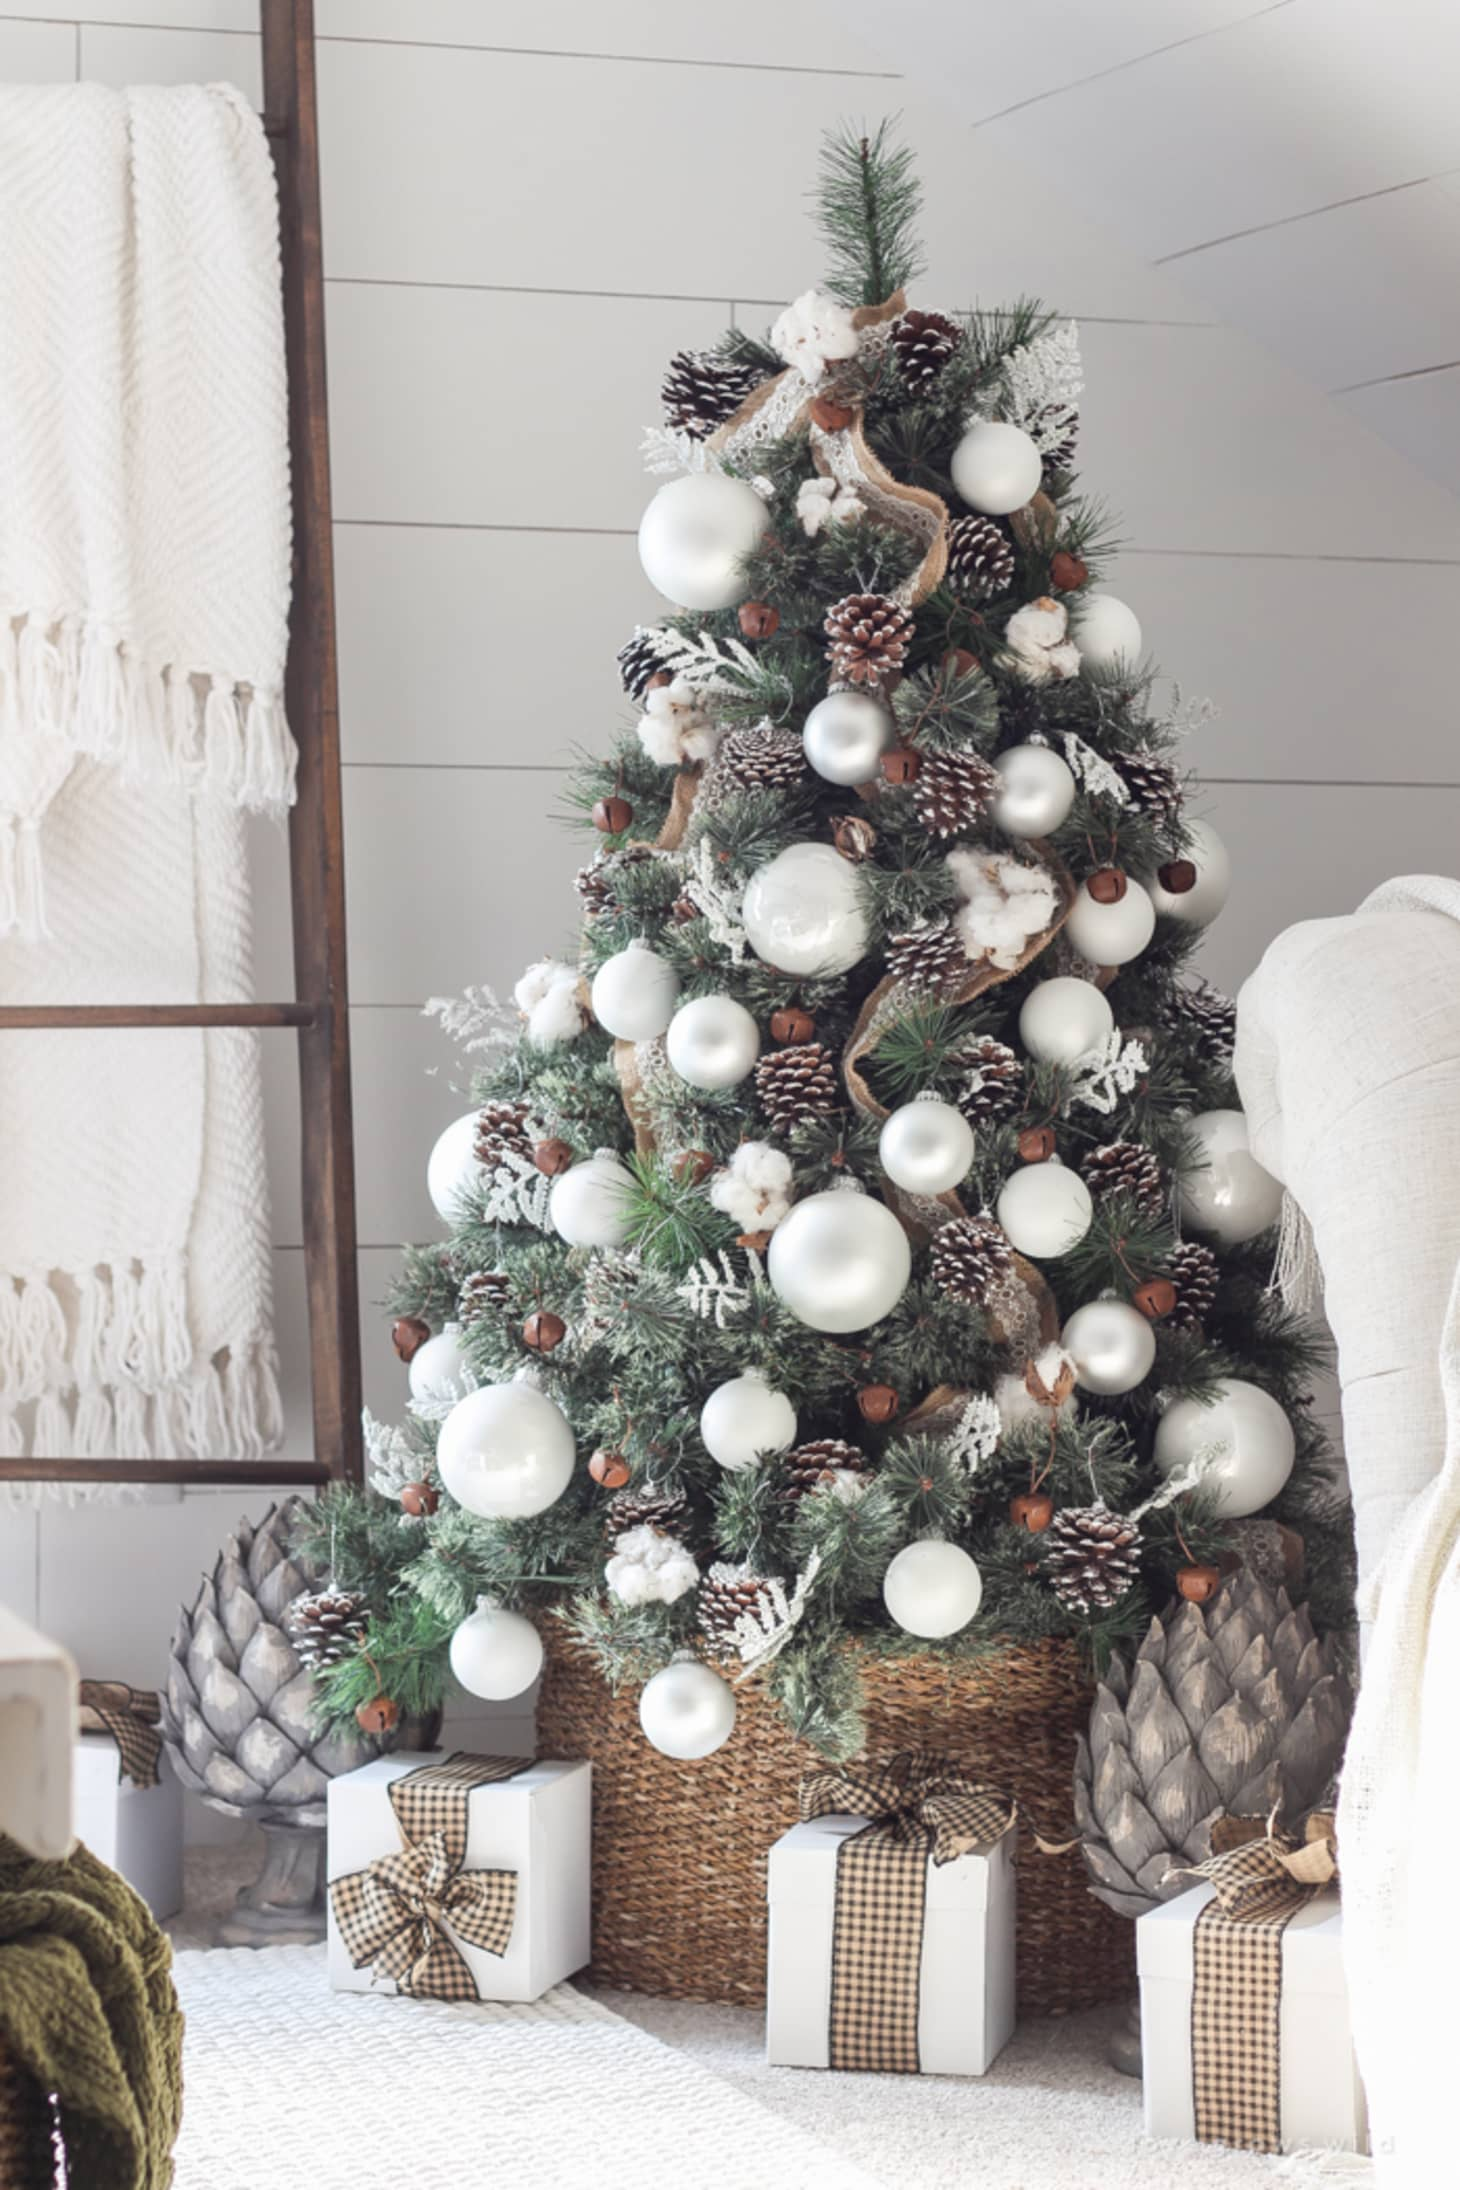 Christmas Tree Decorating Ideas.Christmas Tree Decorating Ideas To Try Apartment Therapy